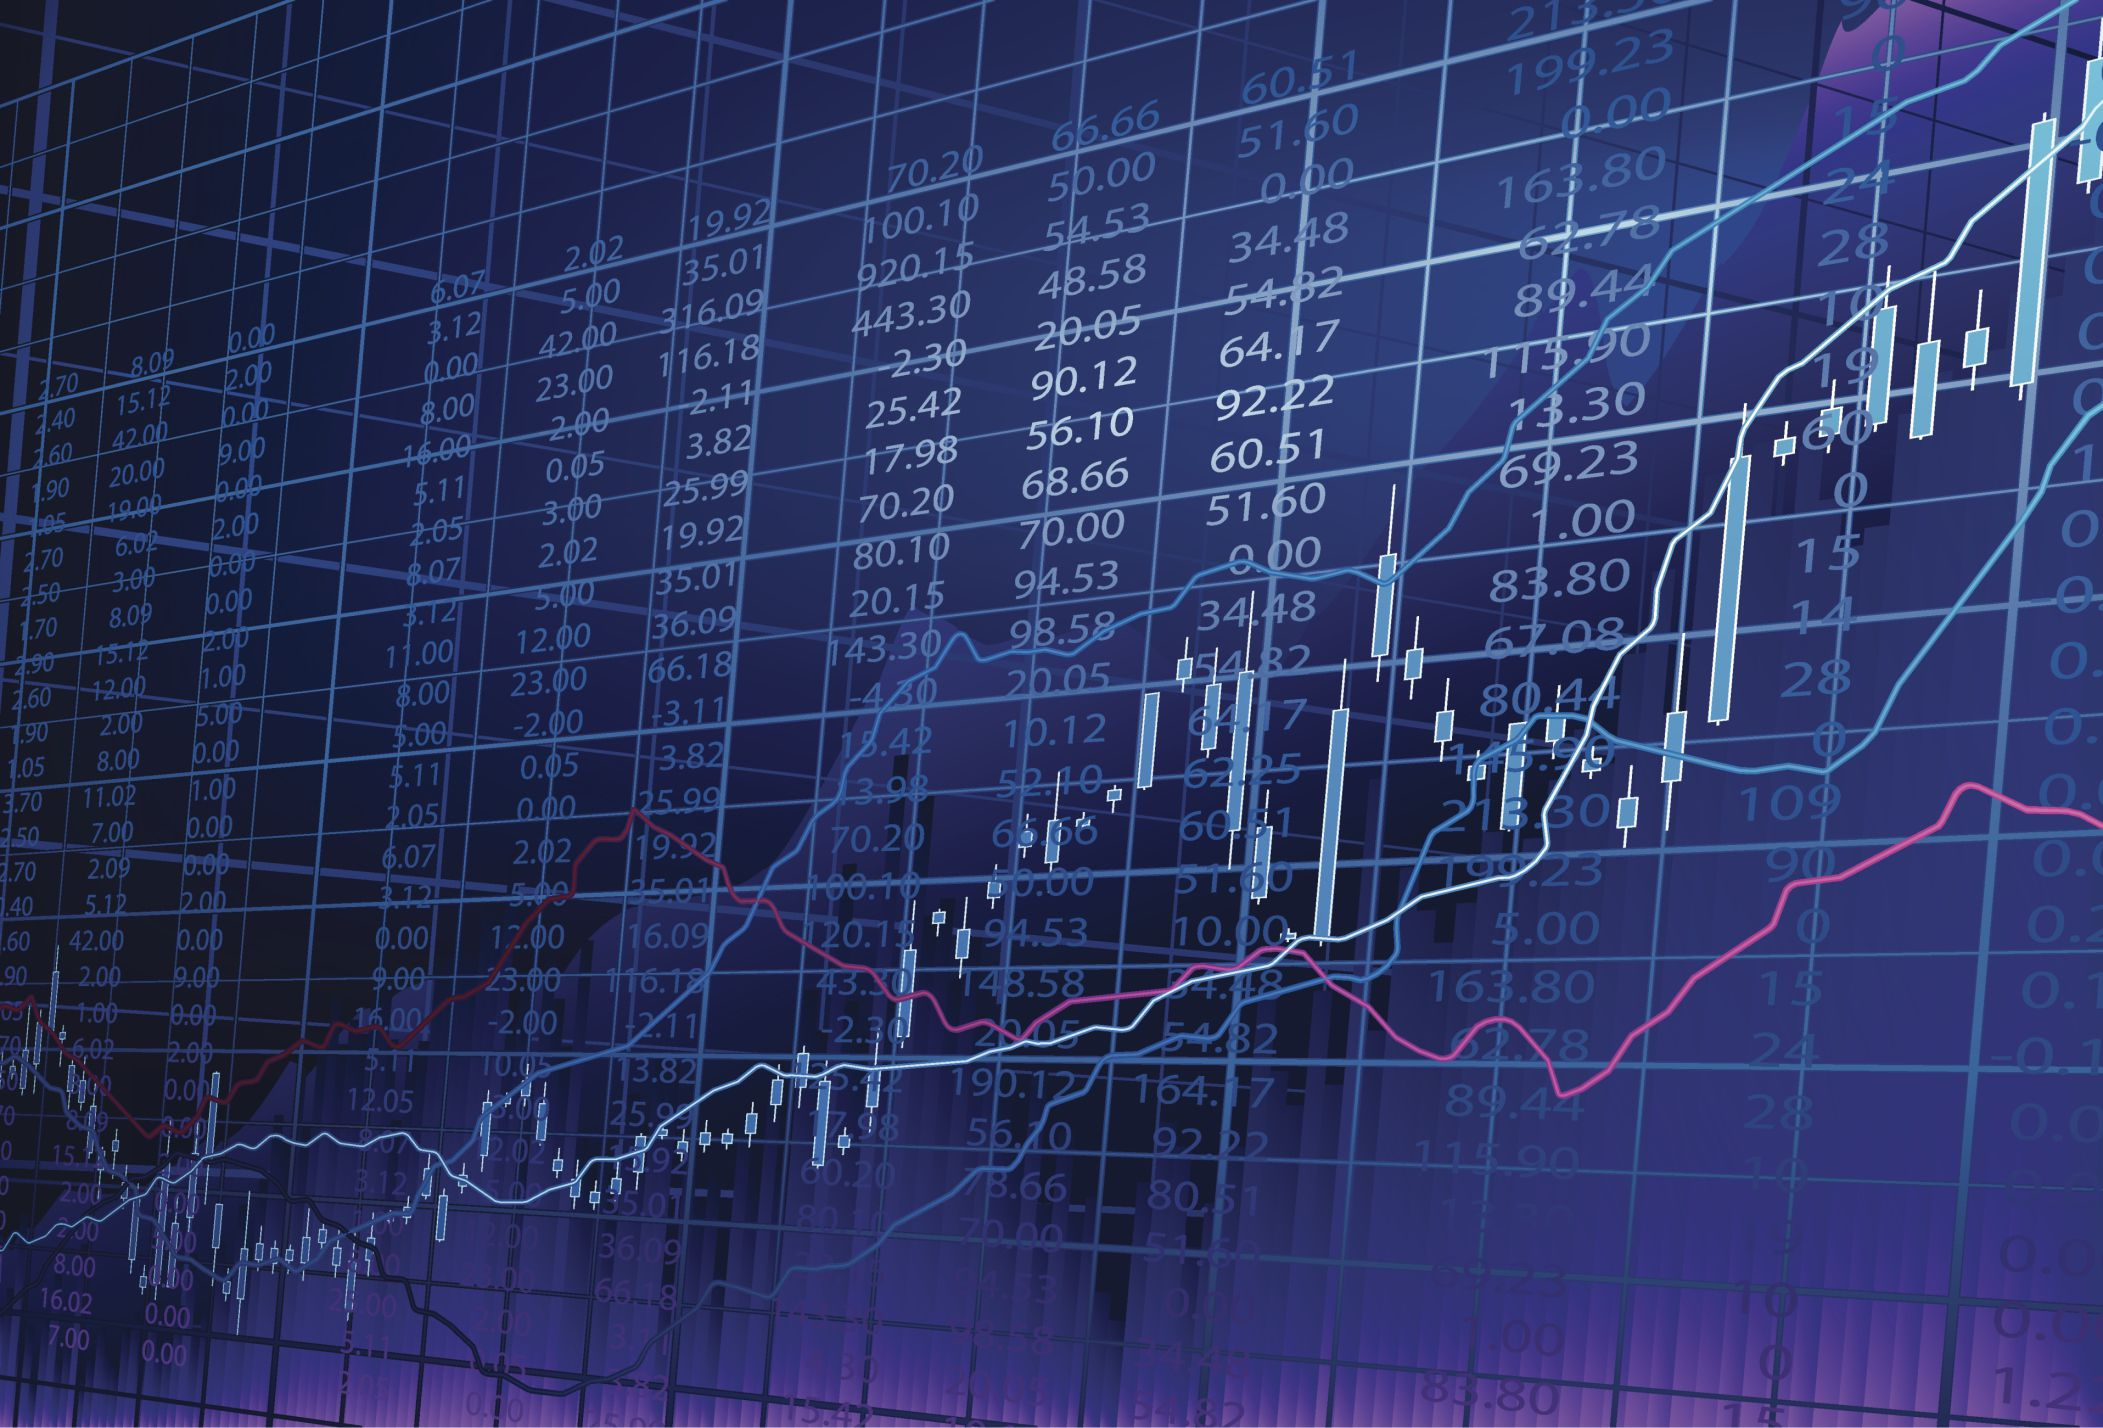 How the Webull helps to get the exact information about stocks?